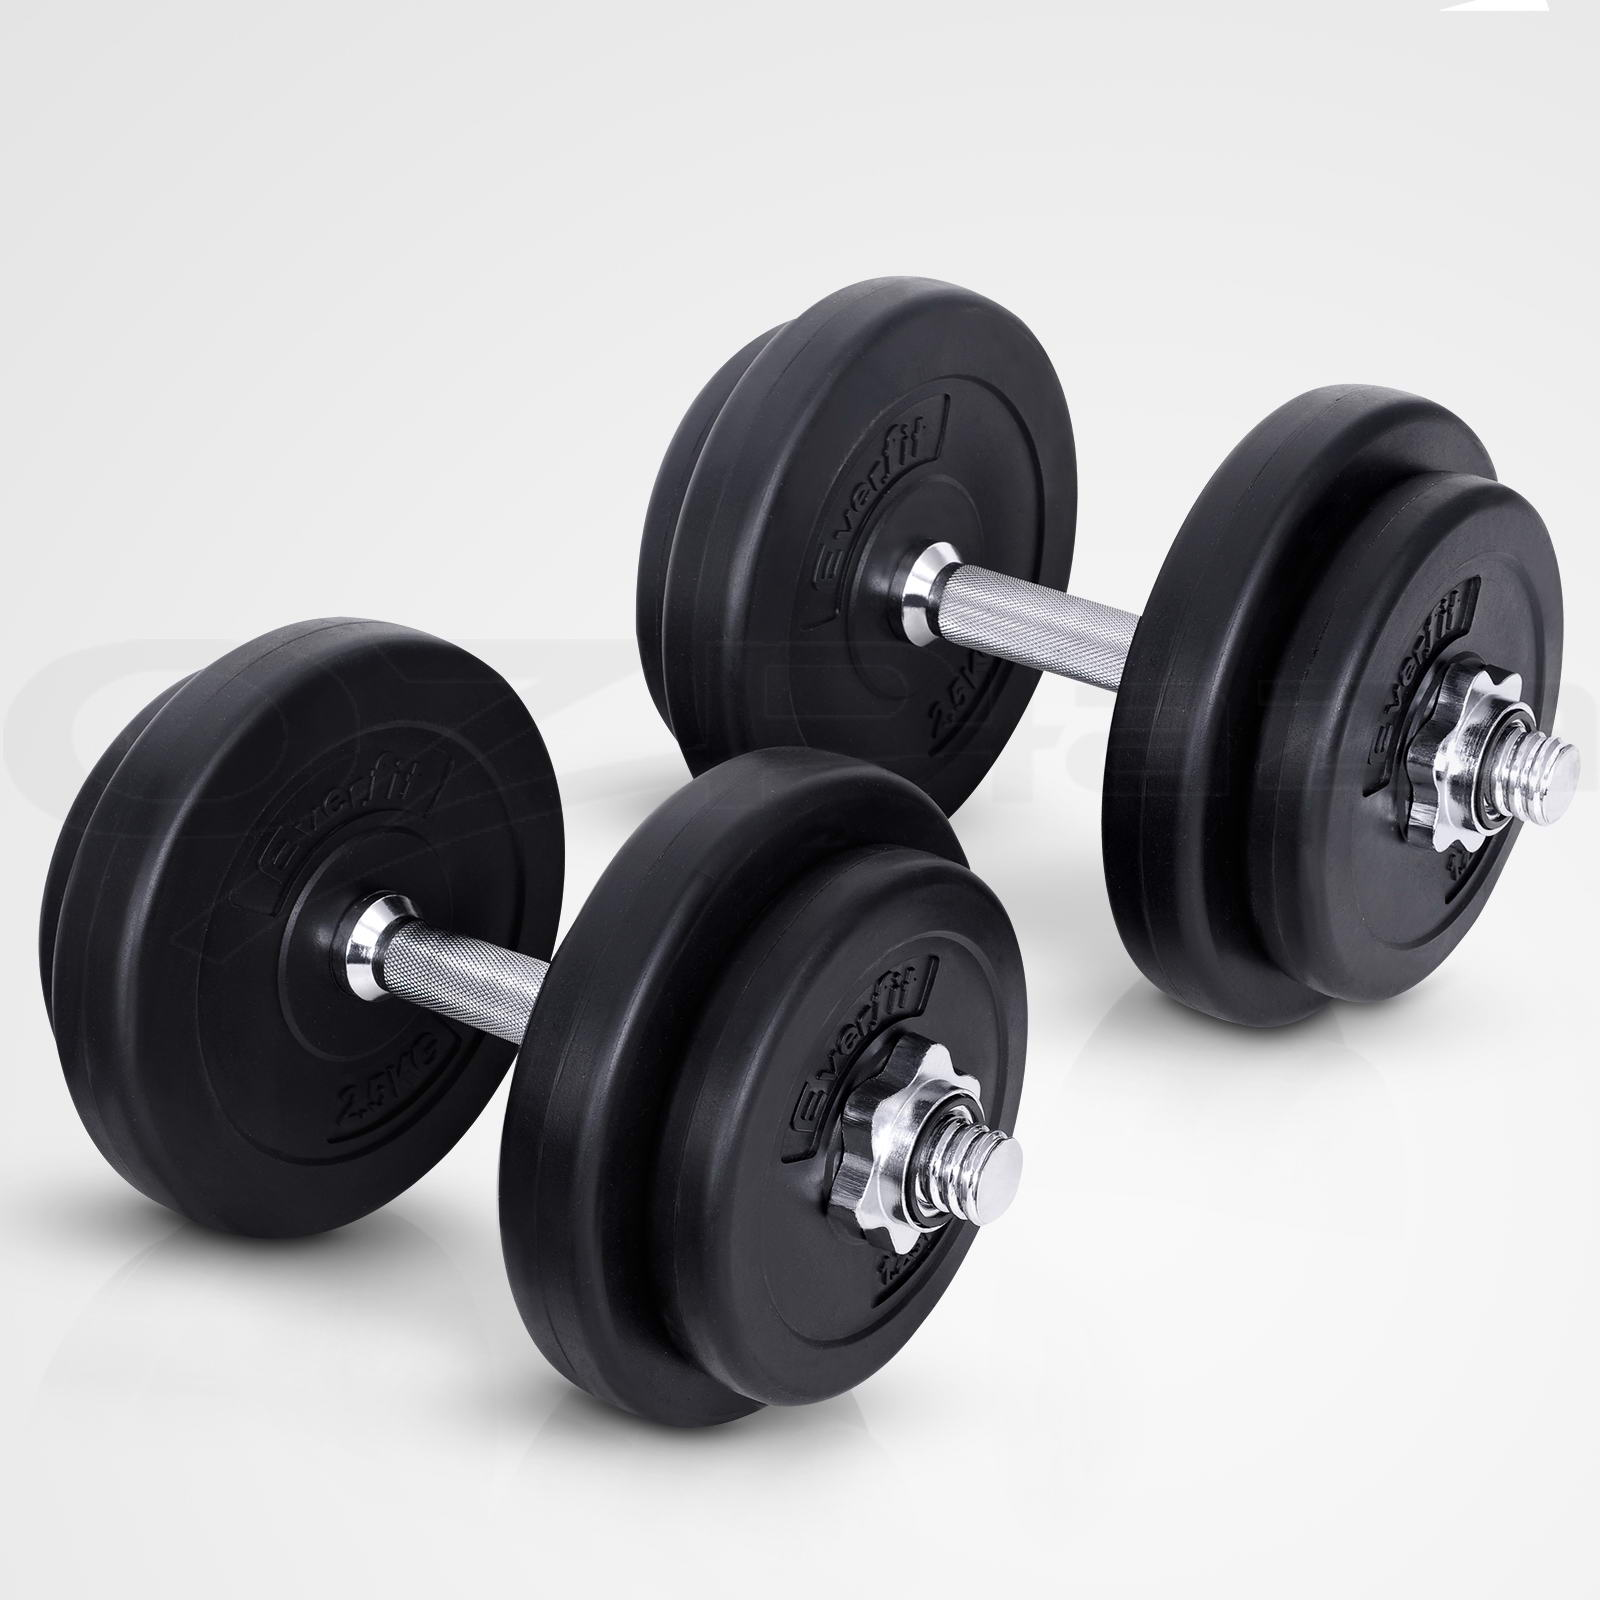 Powerblock Used: Everfit Dumbbell Set Weight Dumbbells Plates Home Gym